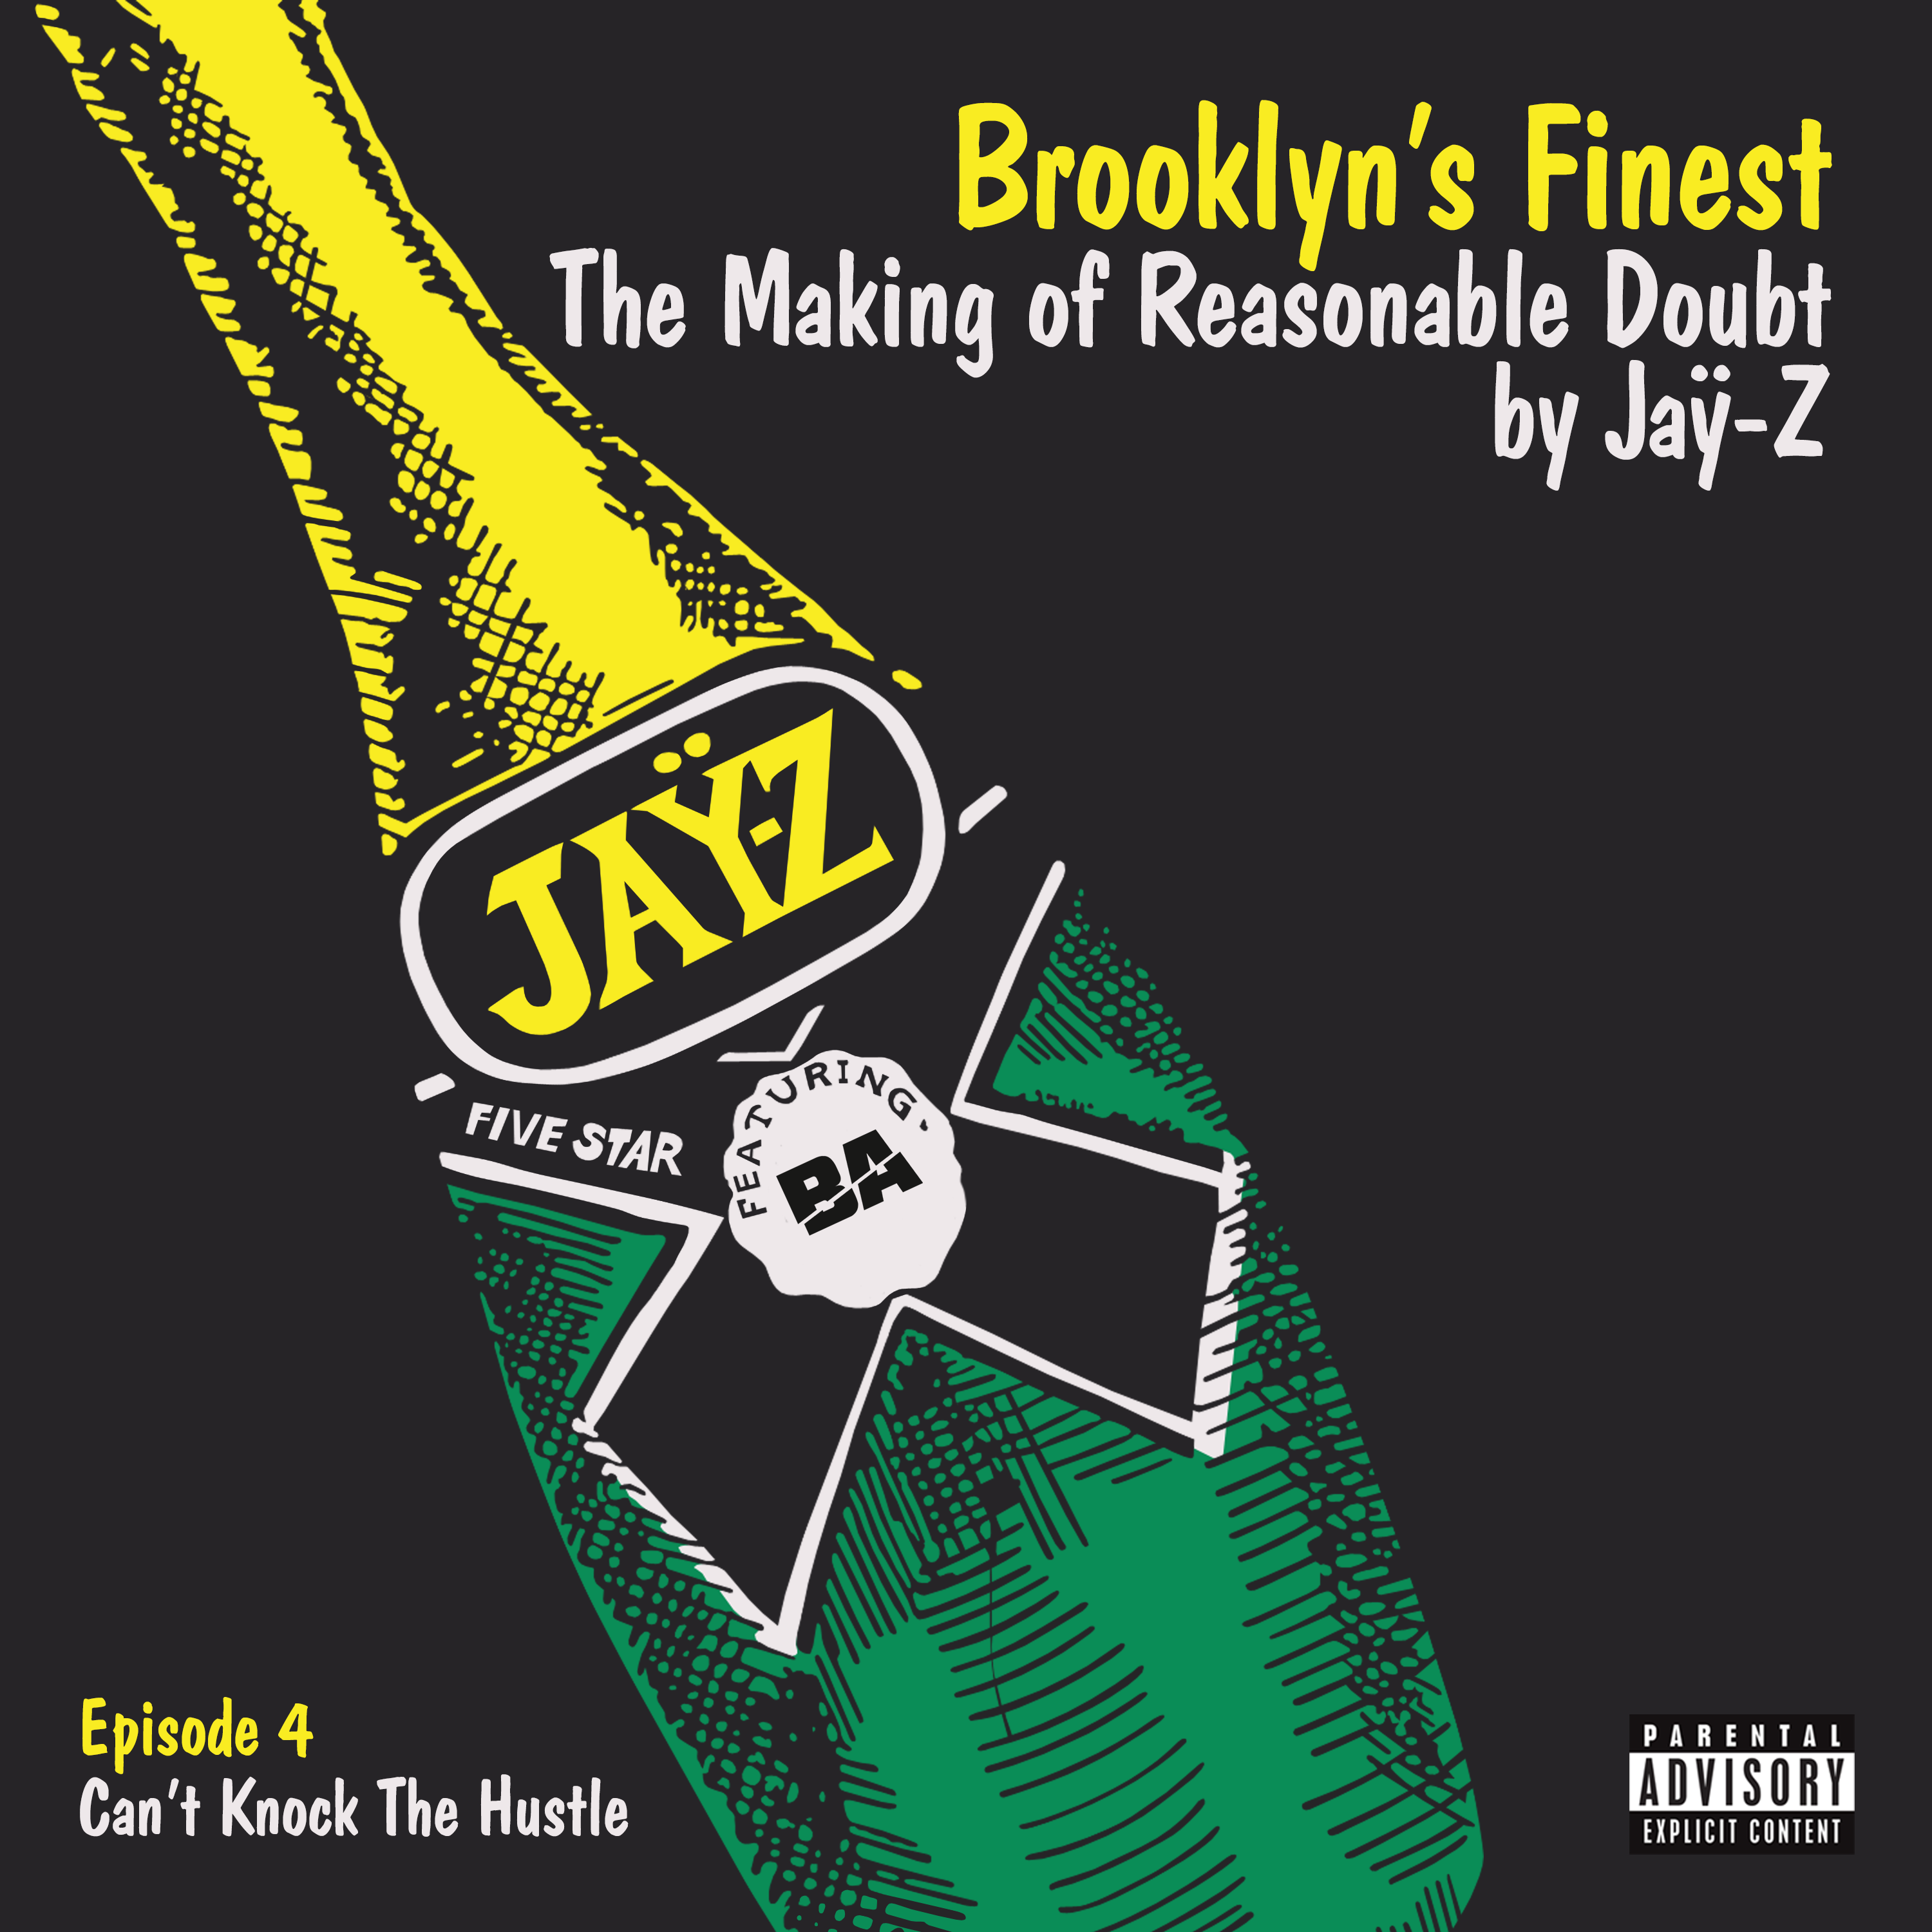 Episode 4: Can't Knock The Hustle | Brooklyn's Finest: The Making of Reasonable Doubt by Jay-Z